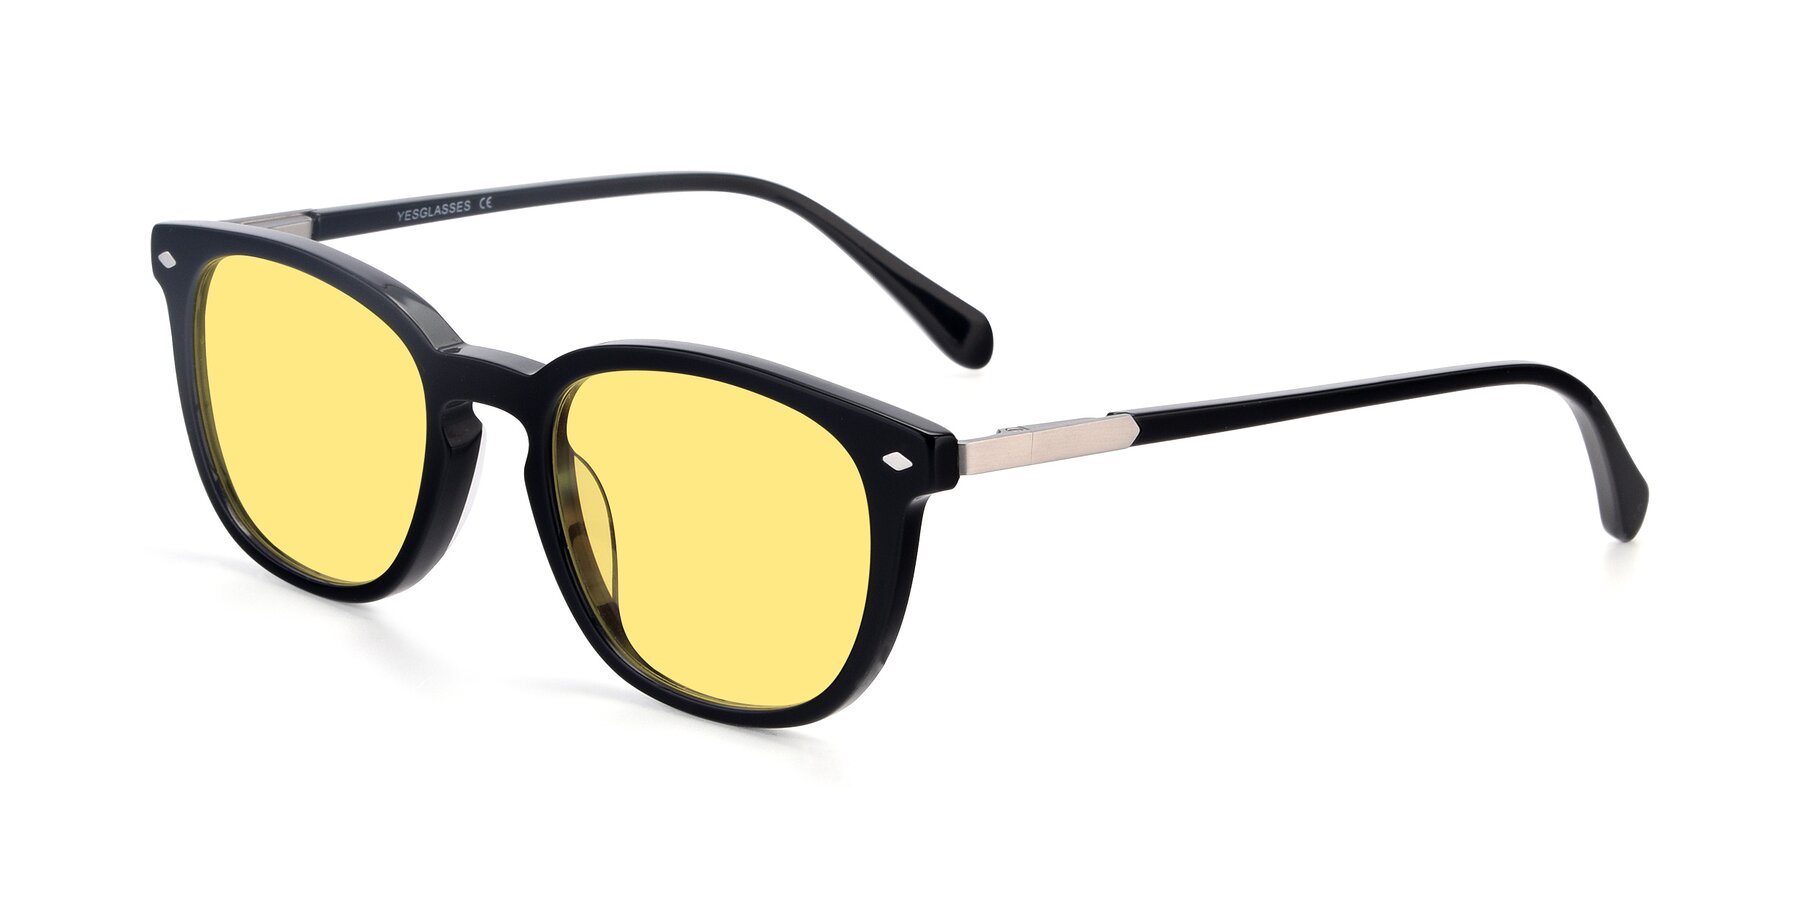 Angle of 17578 in Black with Medium Yellow Tinted Lenses